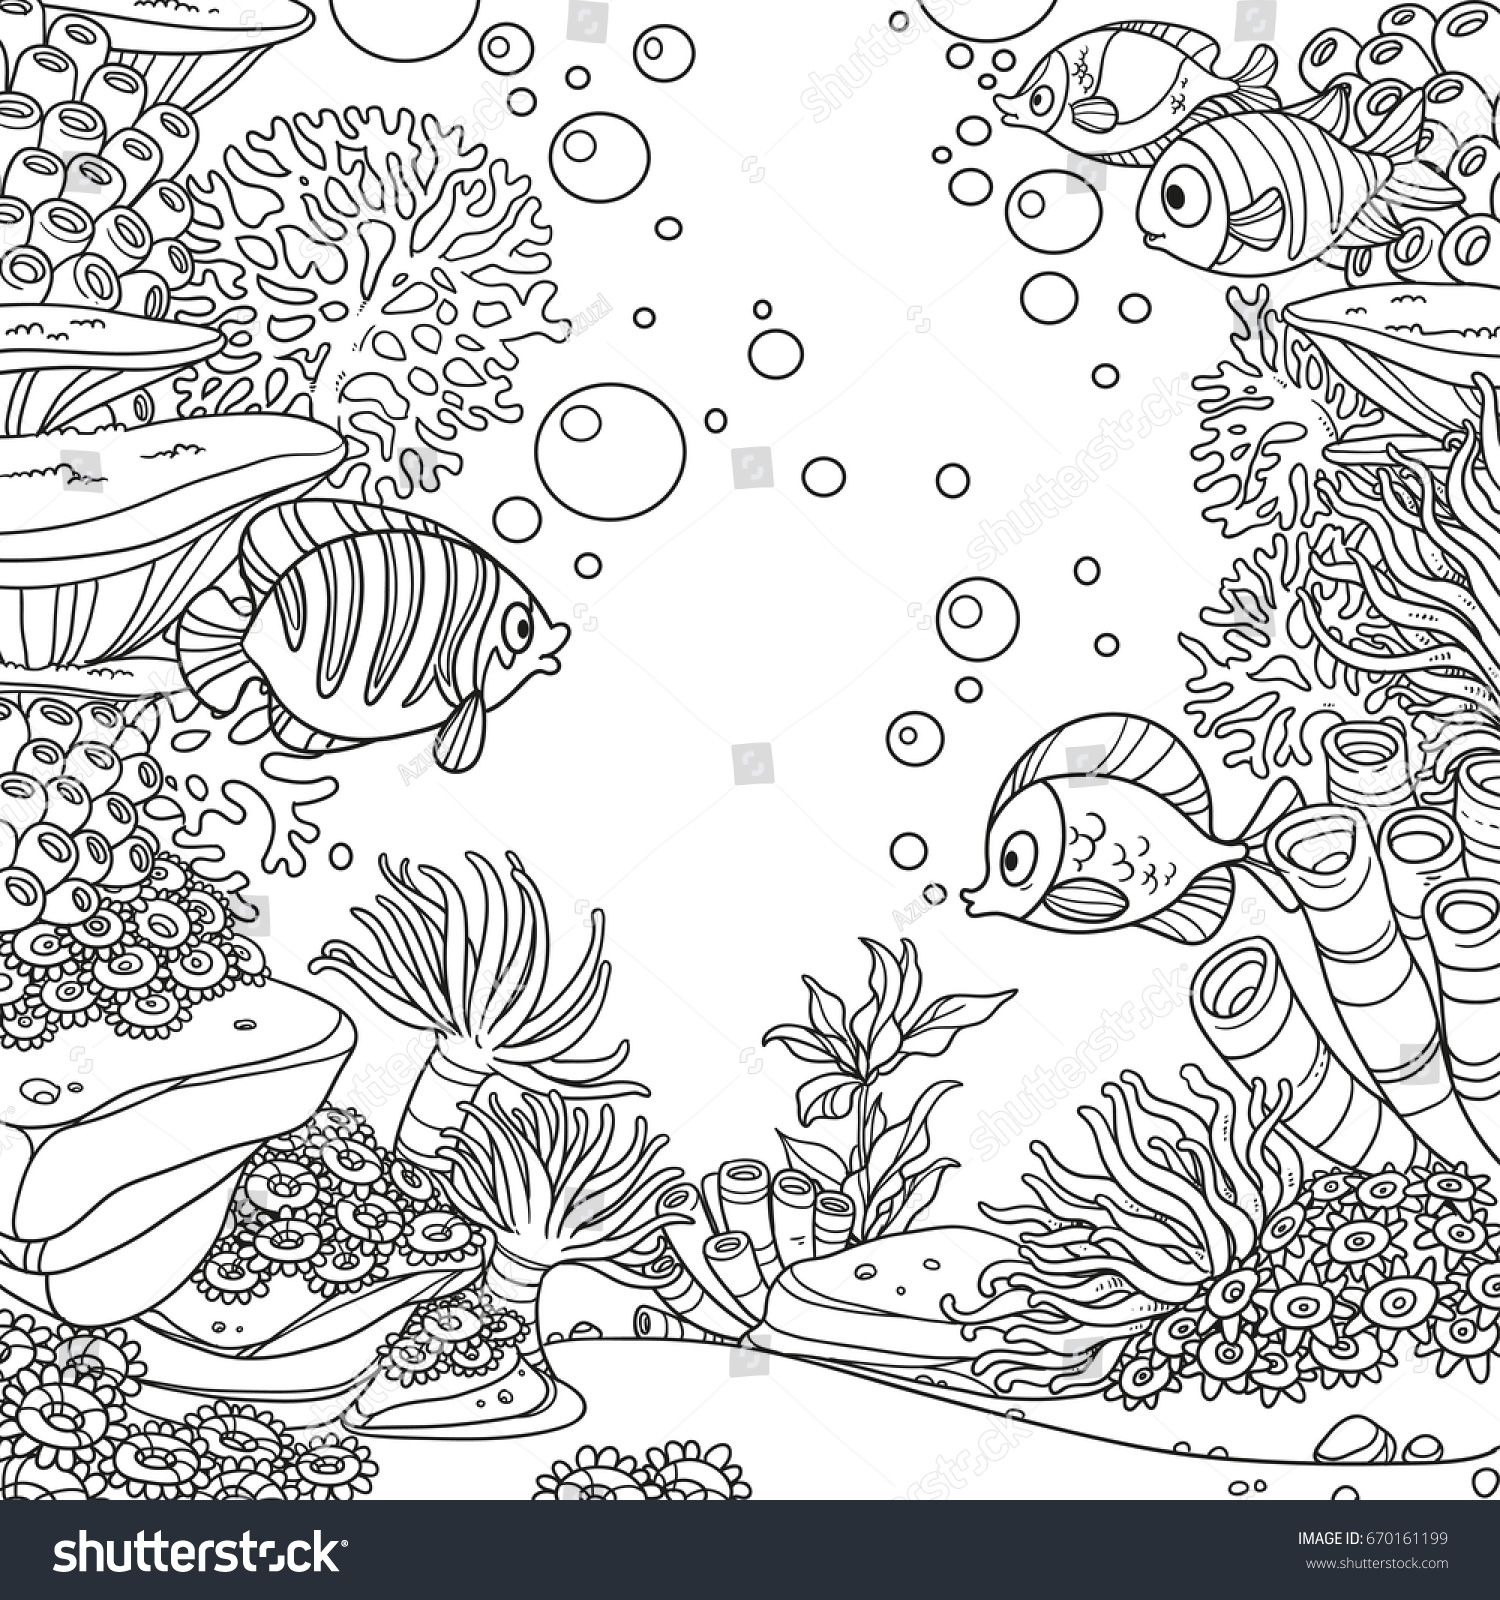 Coloring pages for donna flor - Underwater World With Corals Fish Algae And Anemones Coloring Page Isolated On White Background